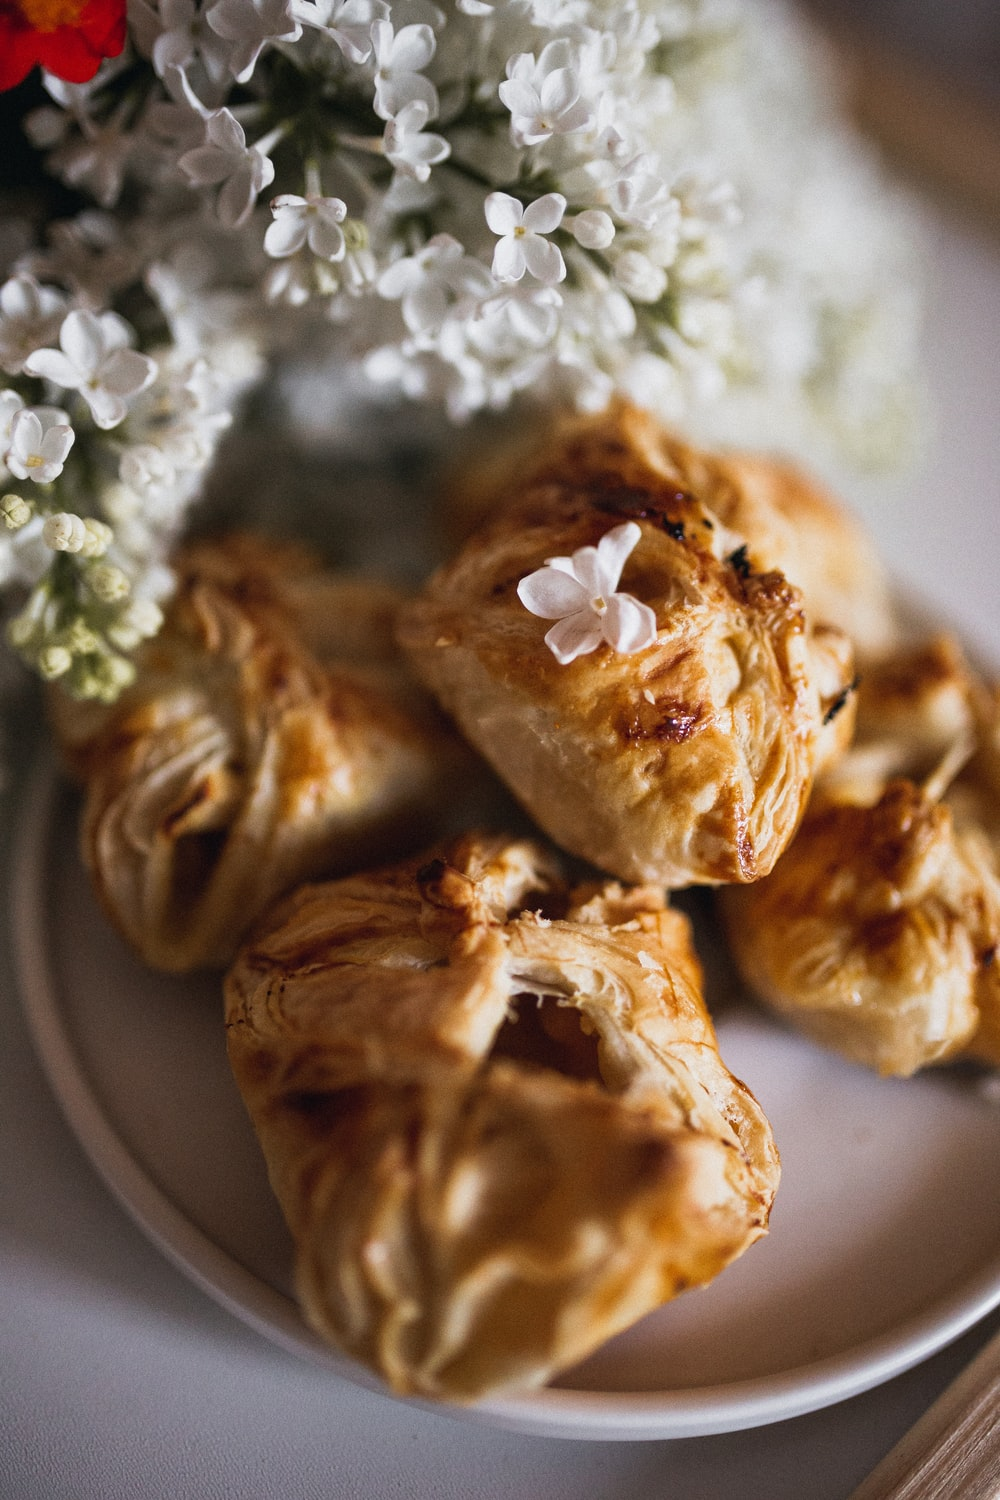 brown pastries on plated beside white flowers